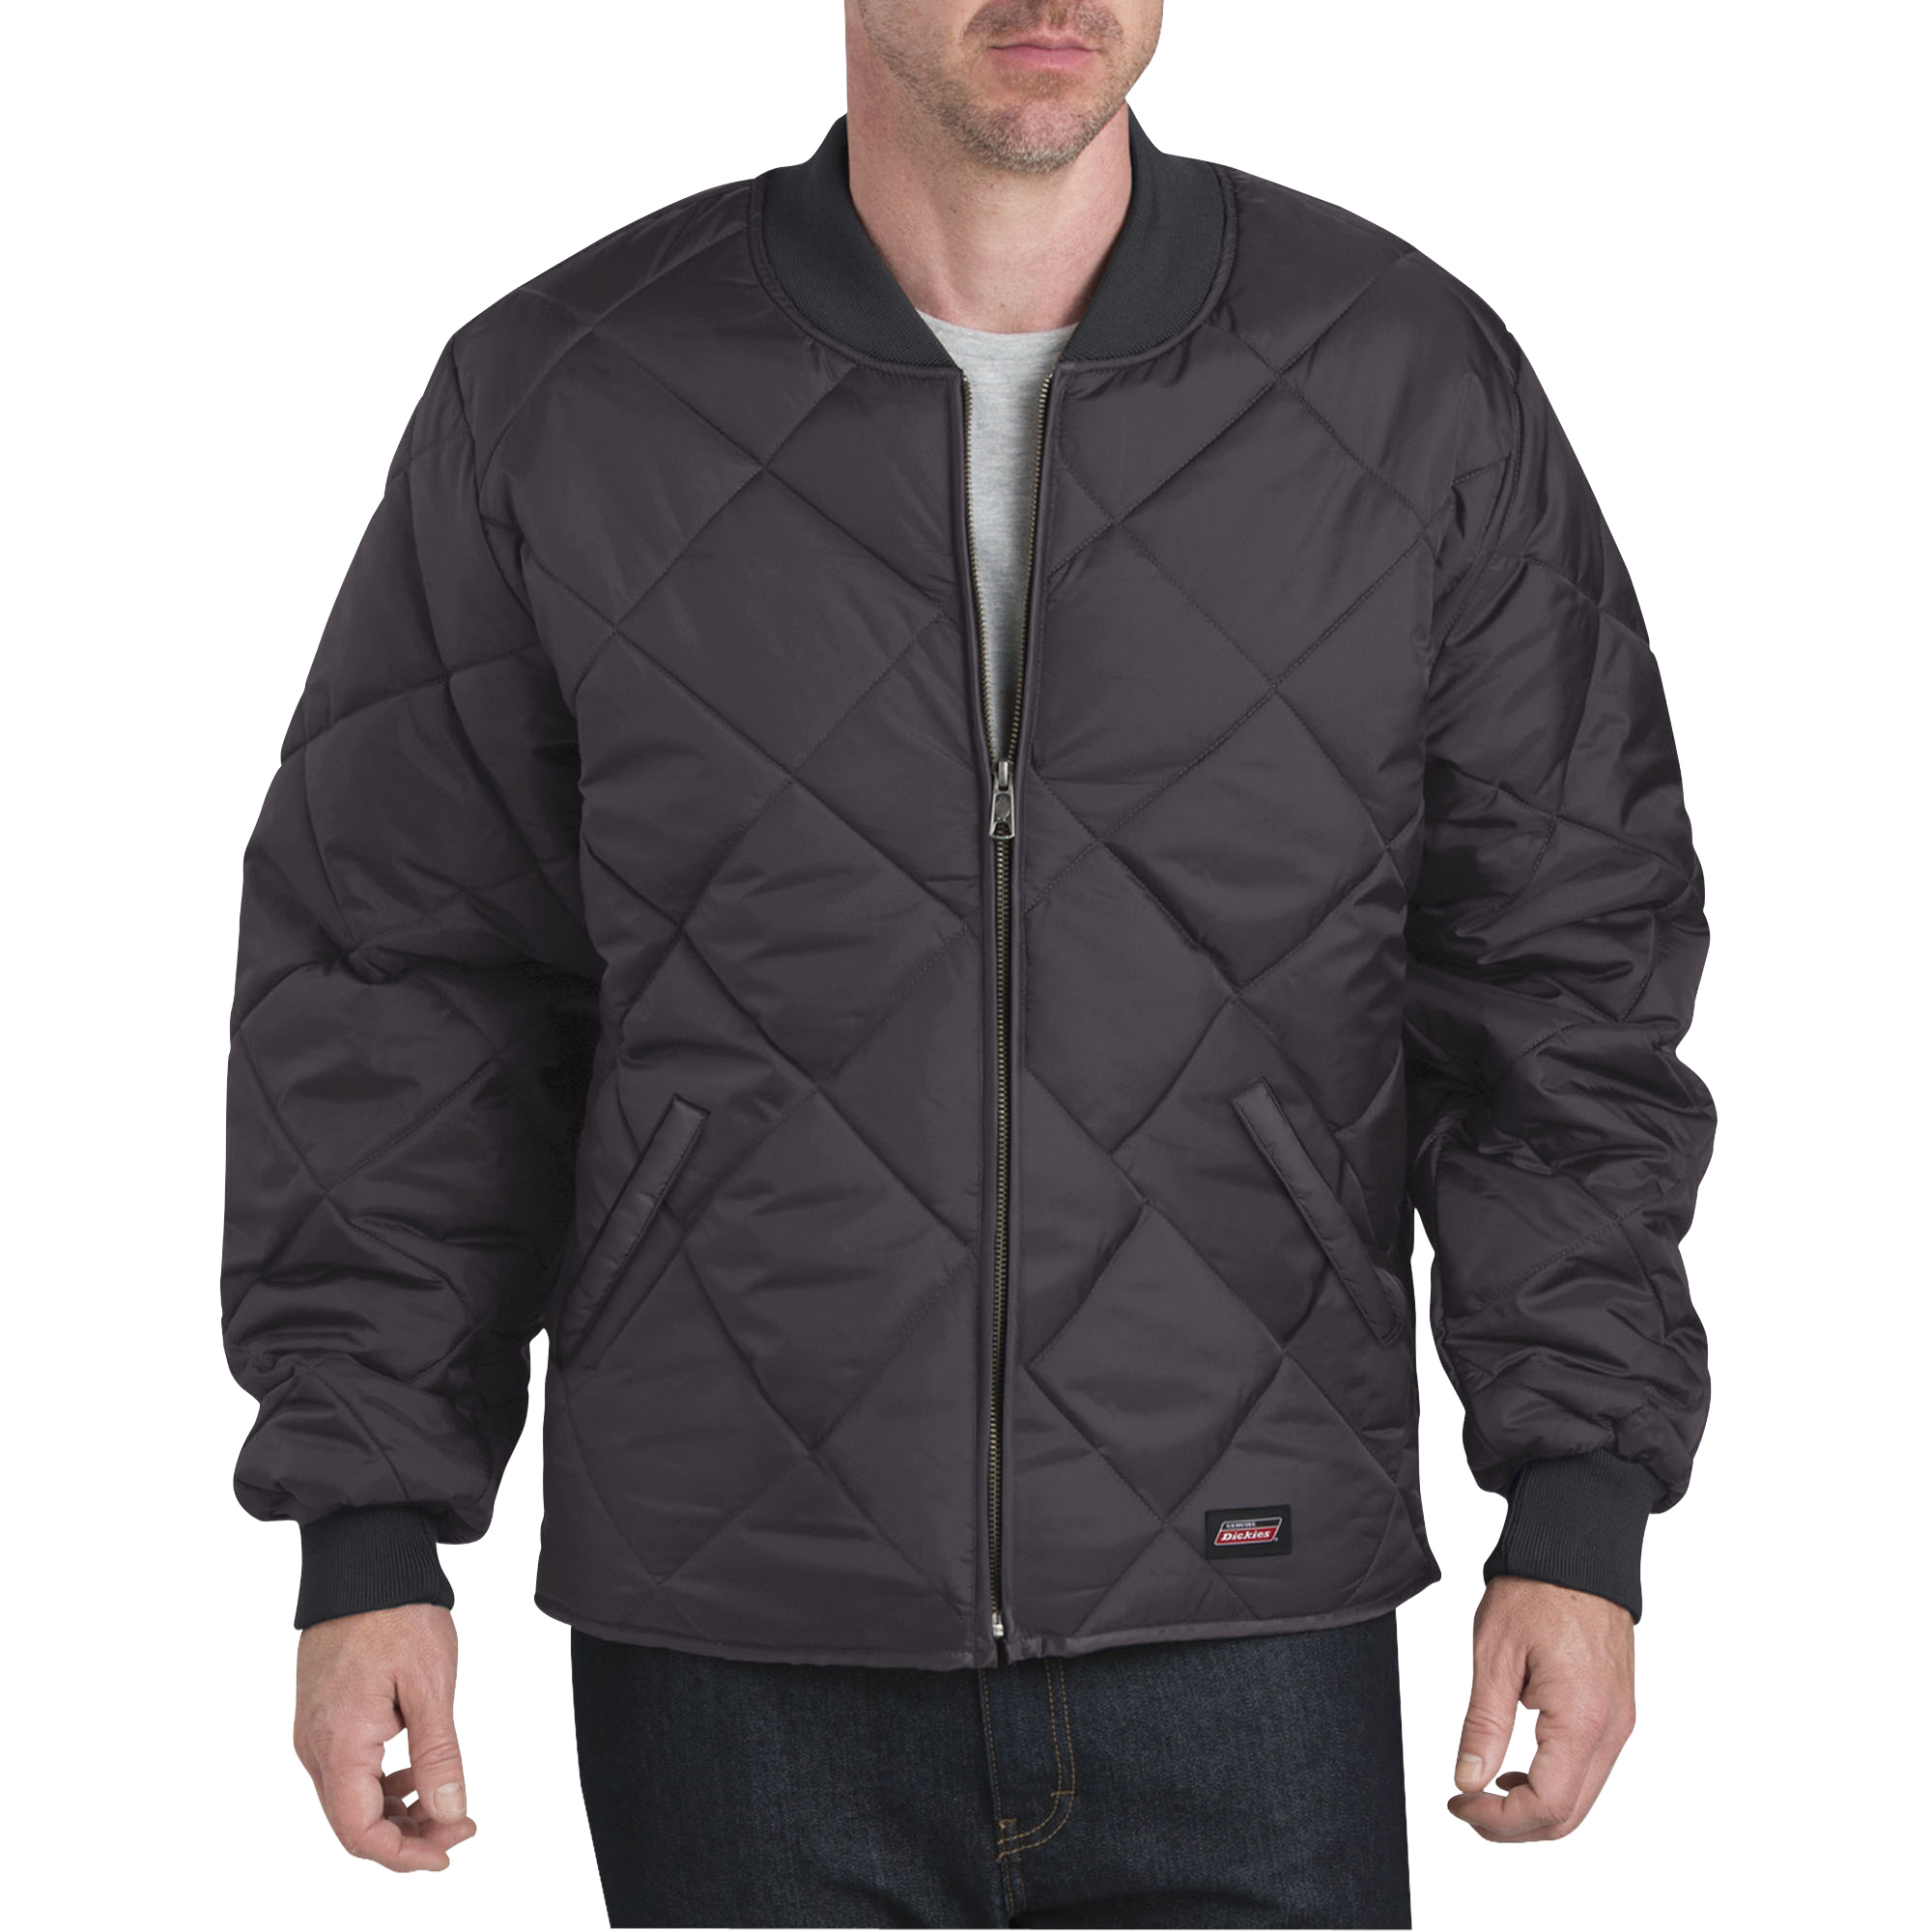 Men's Lightweight Quilted Lined Jacket